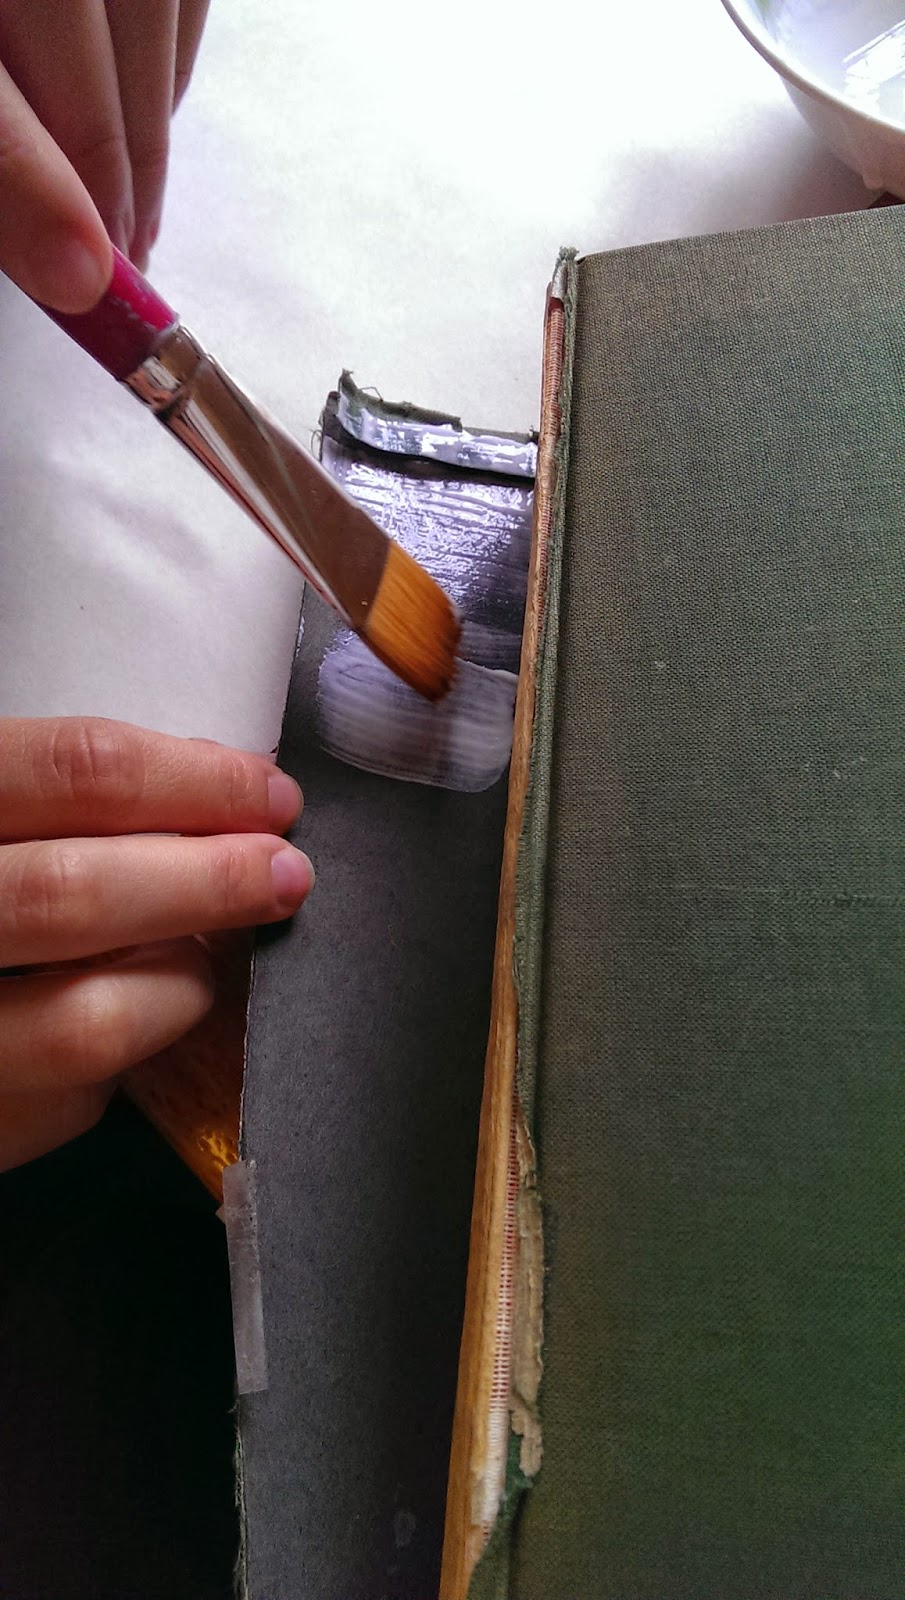 A girl is using a paintbrush to apply white-coloured glue to the spine of an old book that is damaged